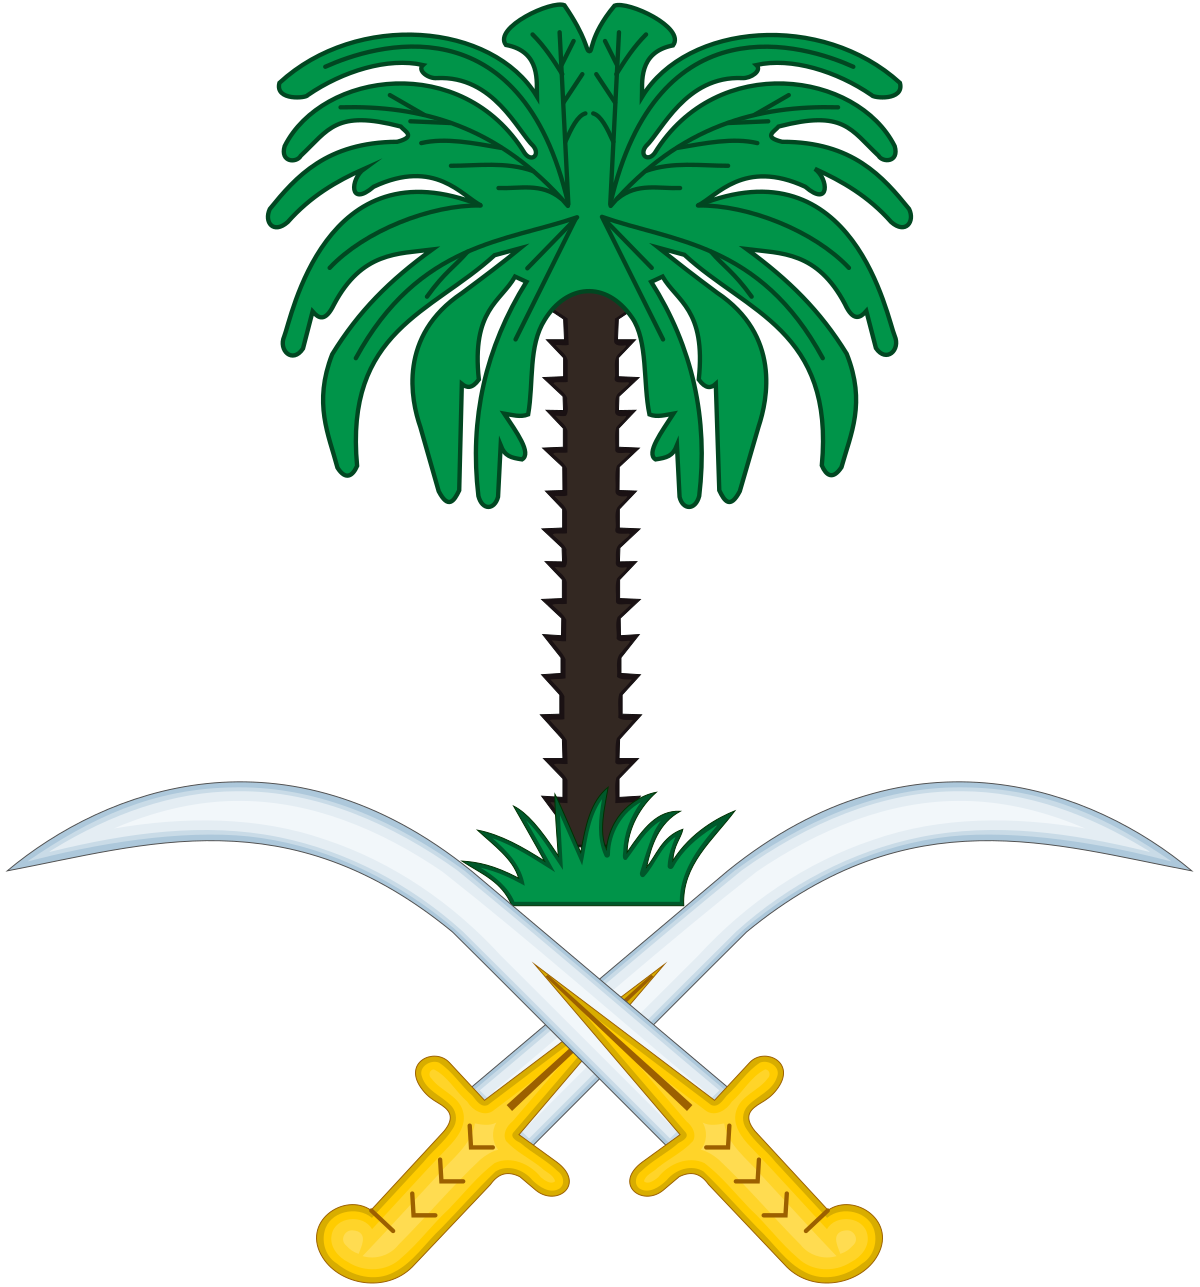 Roots clipart 10 leave. Human rights in saudi